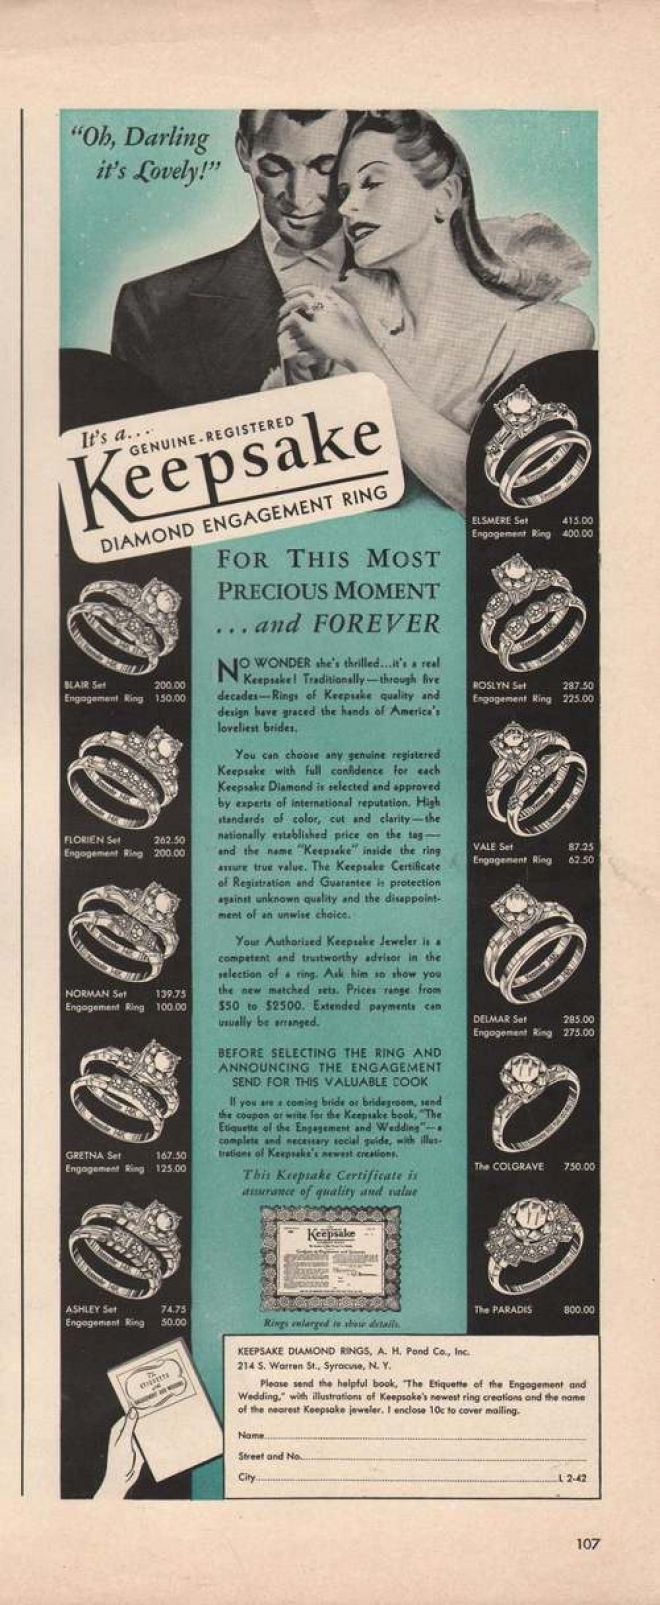 Vintage wedding & engagement ring ad, circa 1940s - 1950s - Keepsake Brand